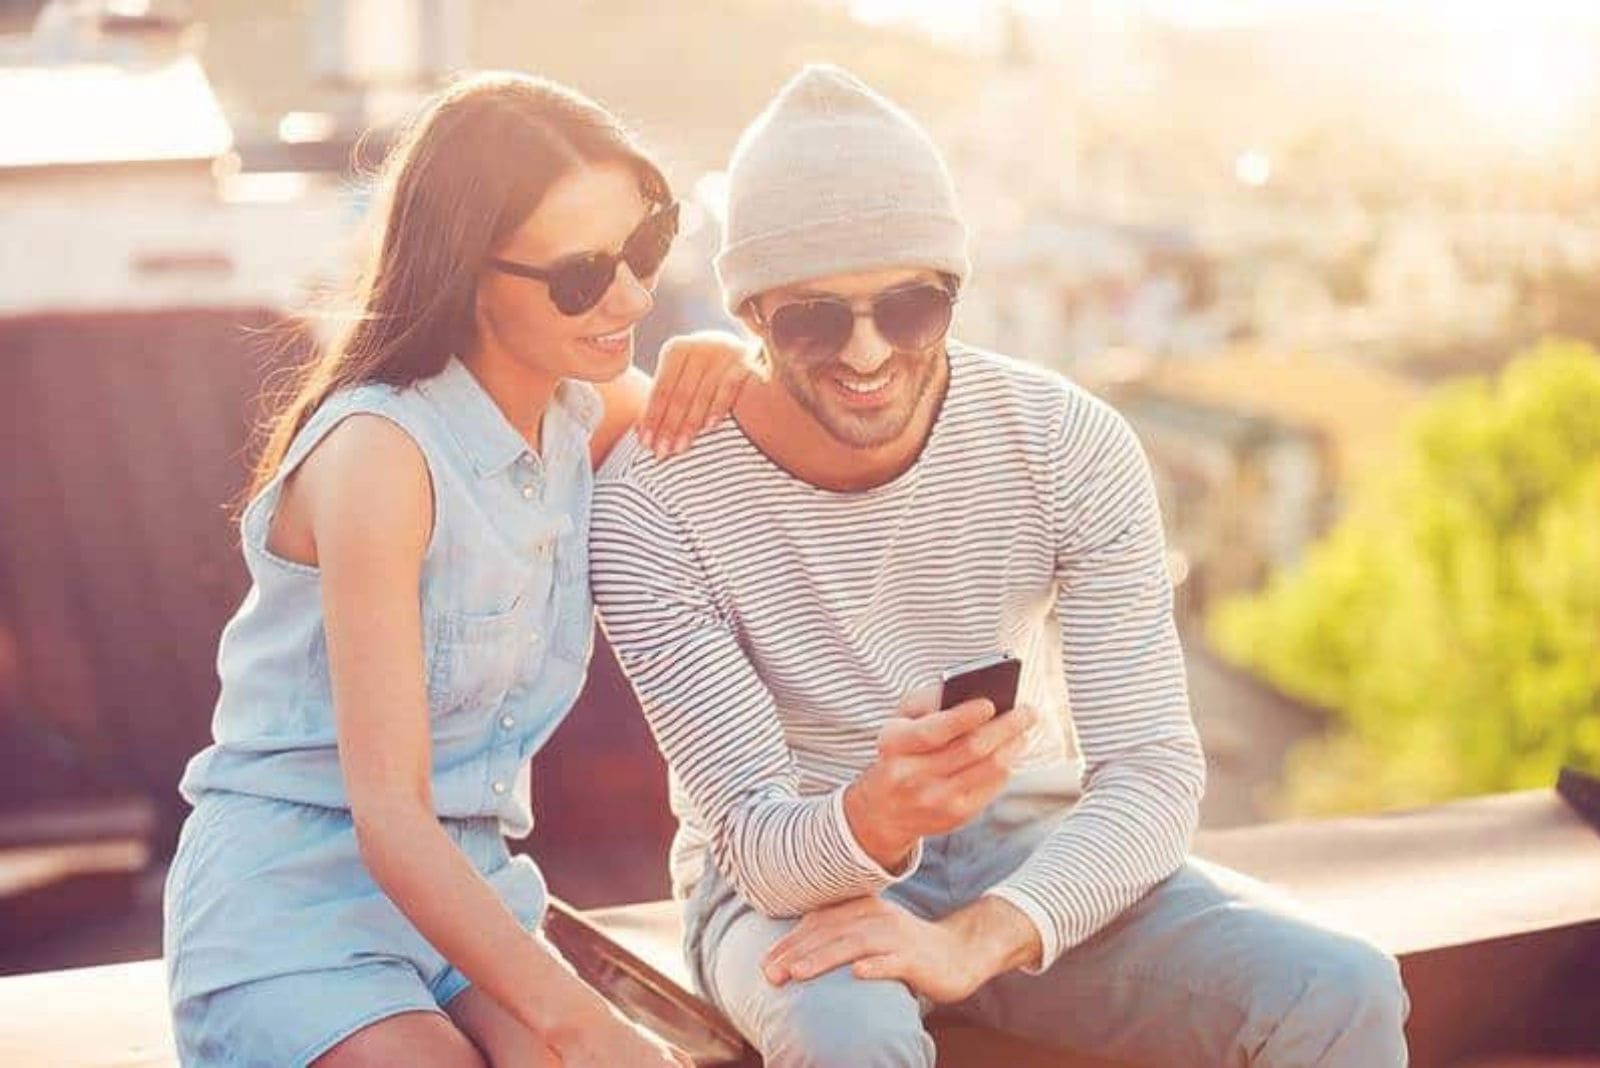 couple looking at smartphone and smiling